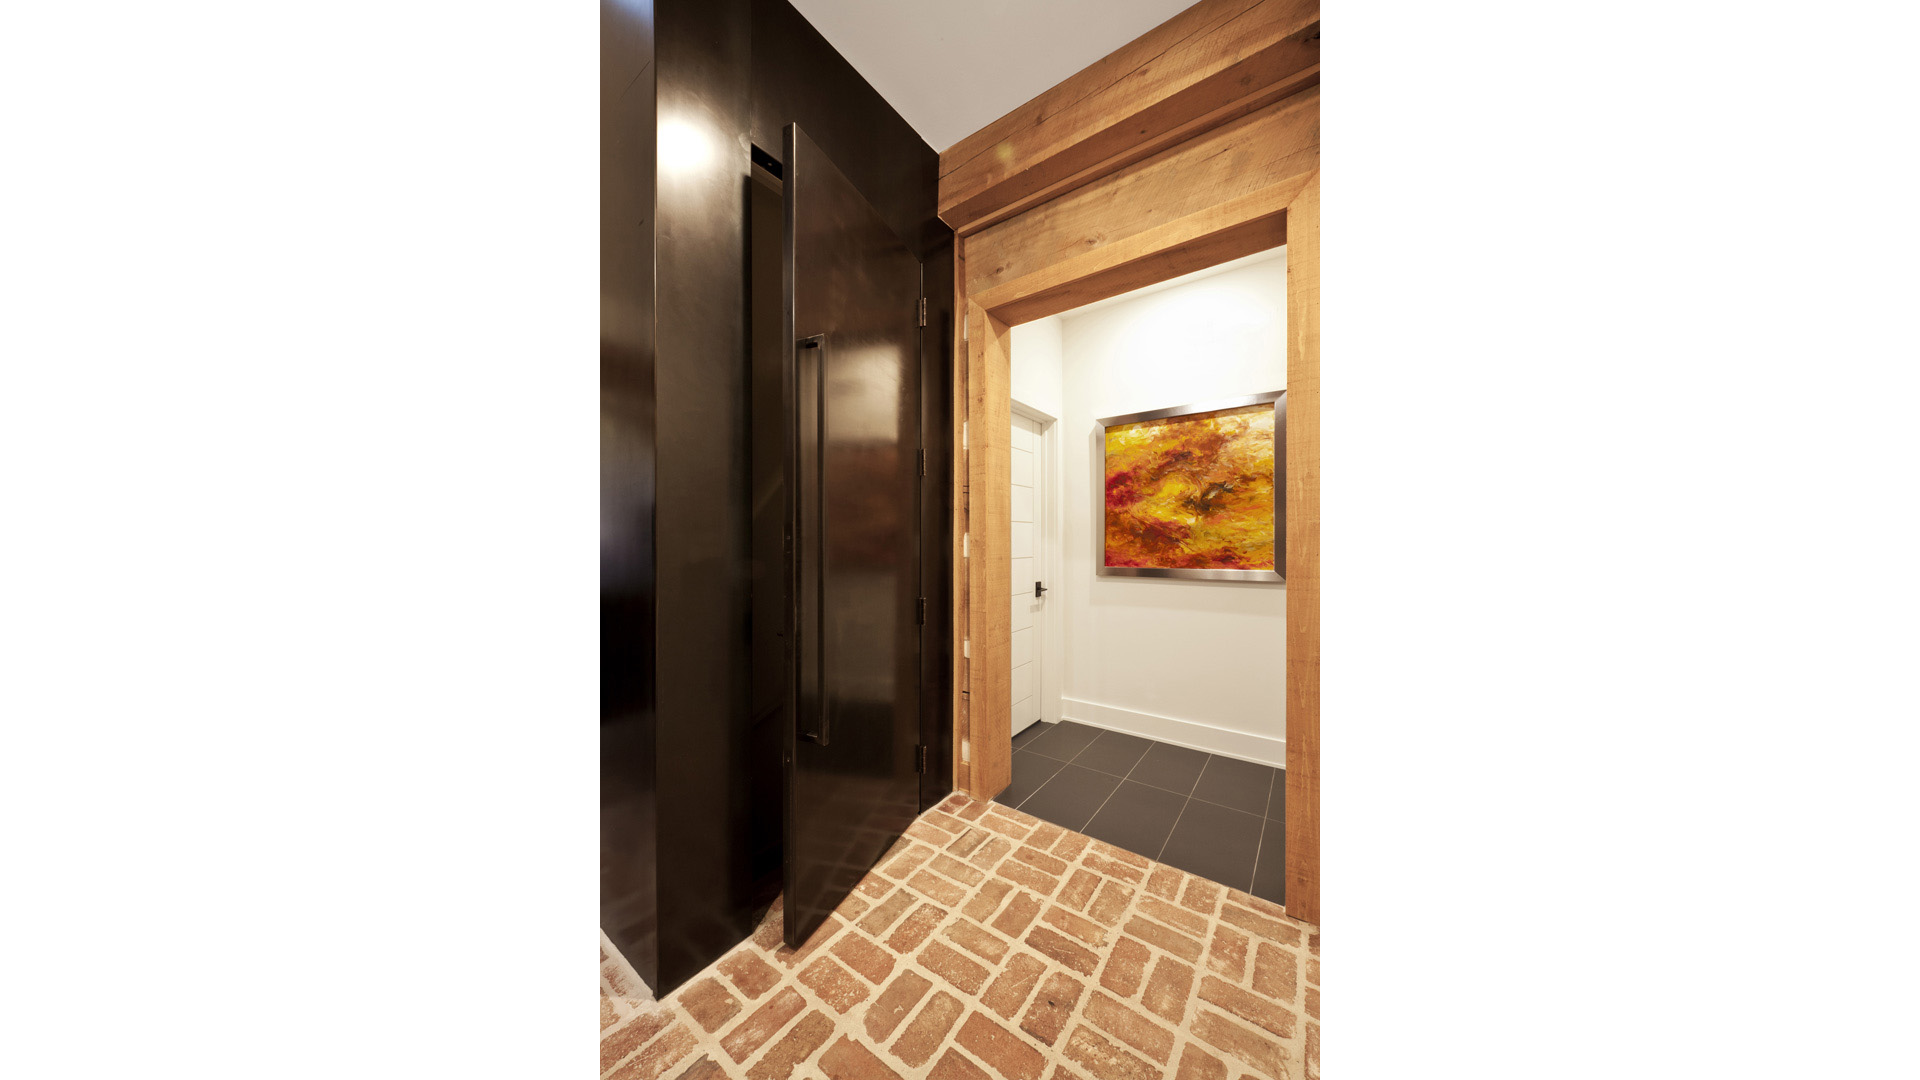 Scandinavian Rustic Cabin - Steel Door - Christopher Short, Architect, Indianapolis, HAUS Architecture